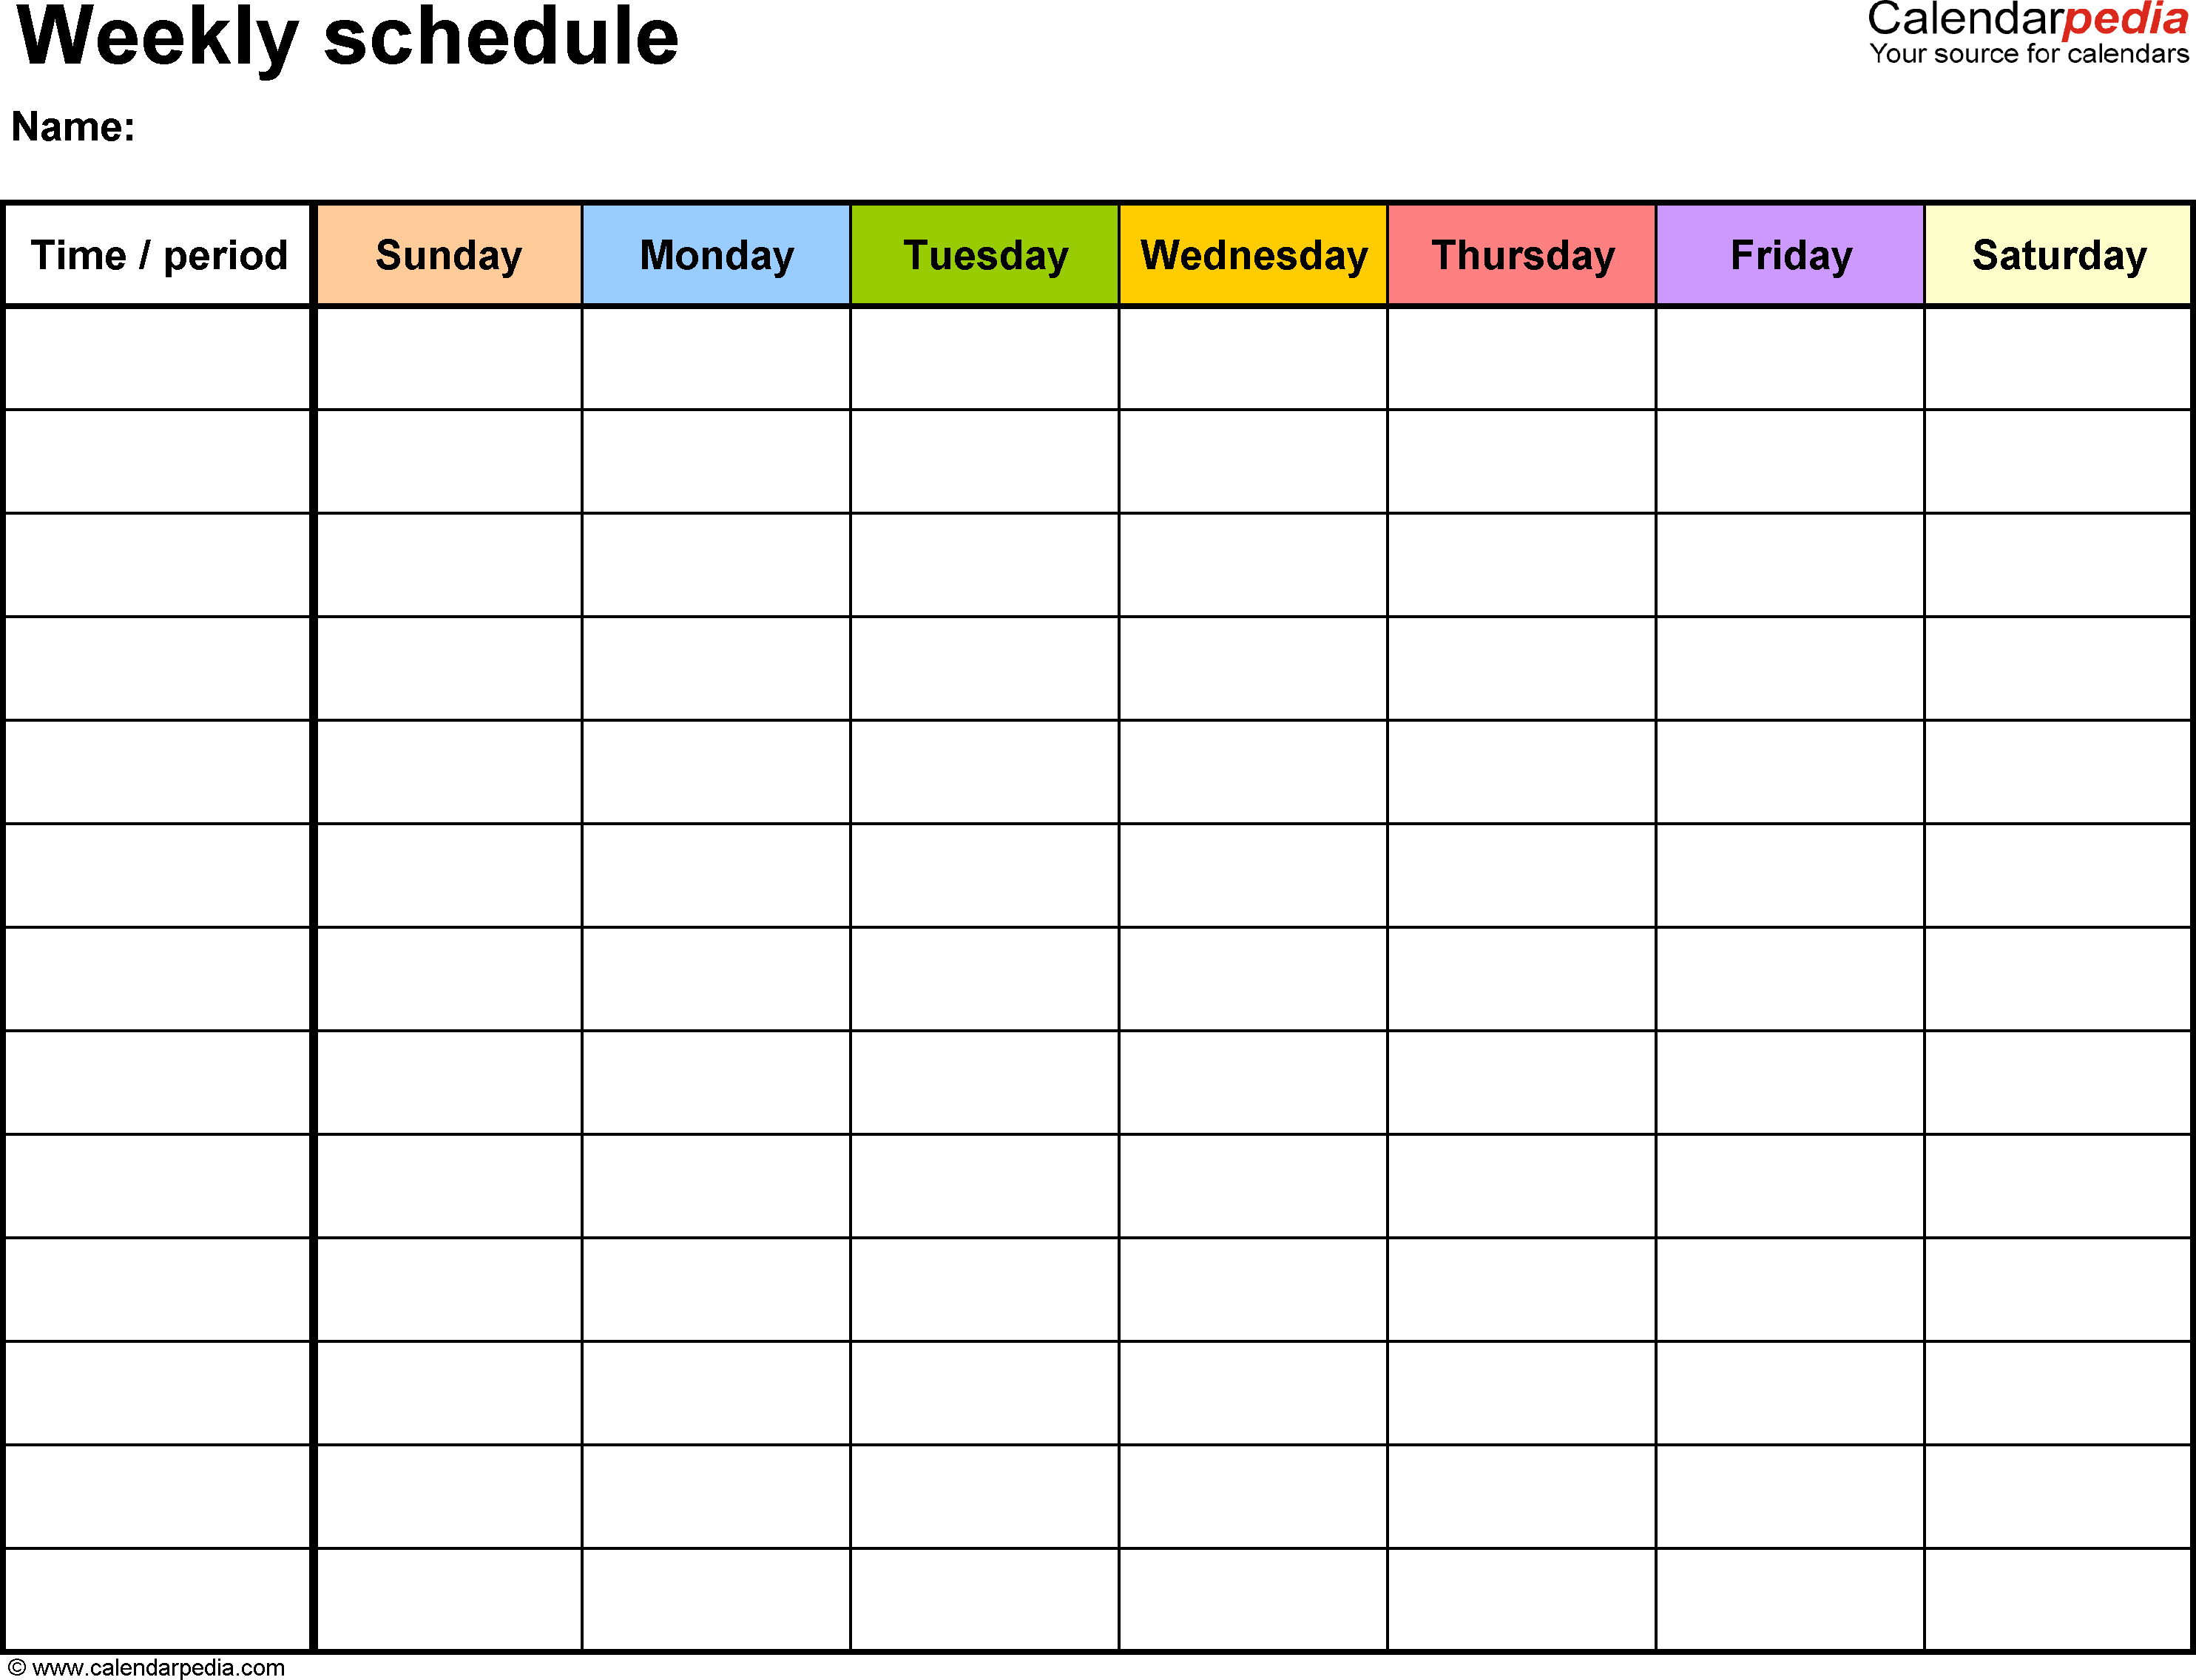 Free Weekly Schedule Templates For Word - 18 Templates pertaining to Cute Blank Day Calender Templates